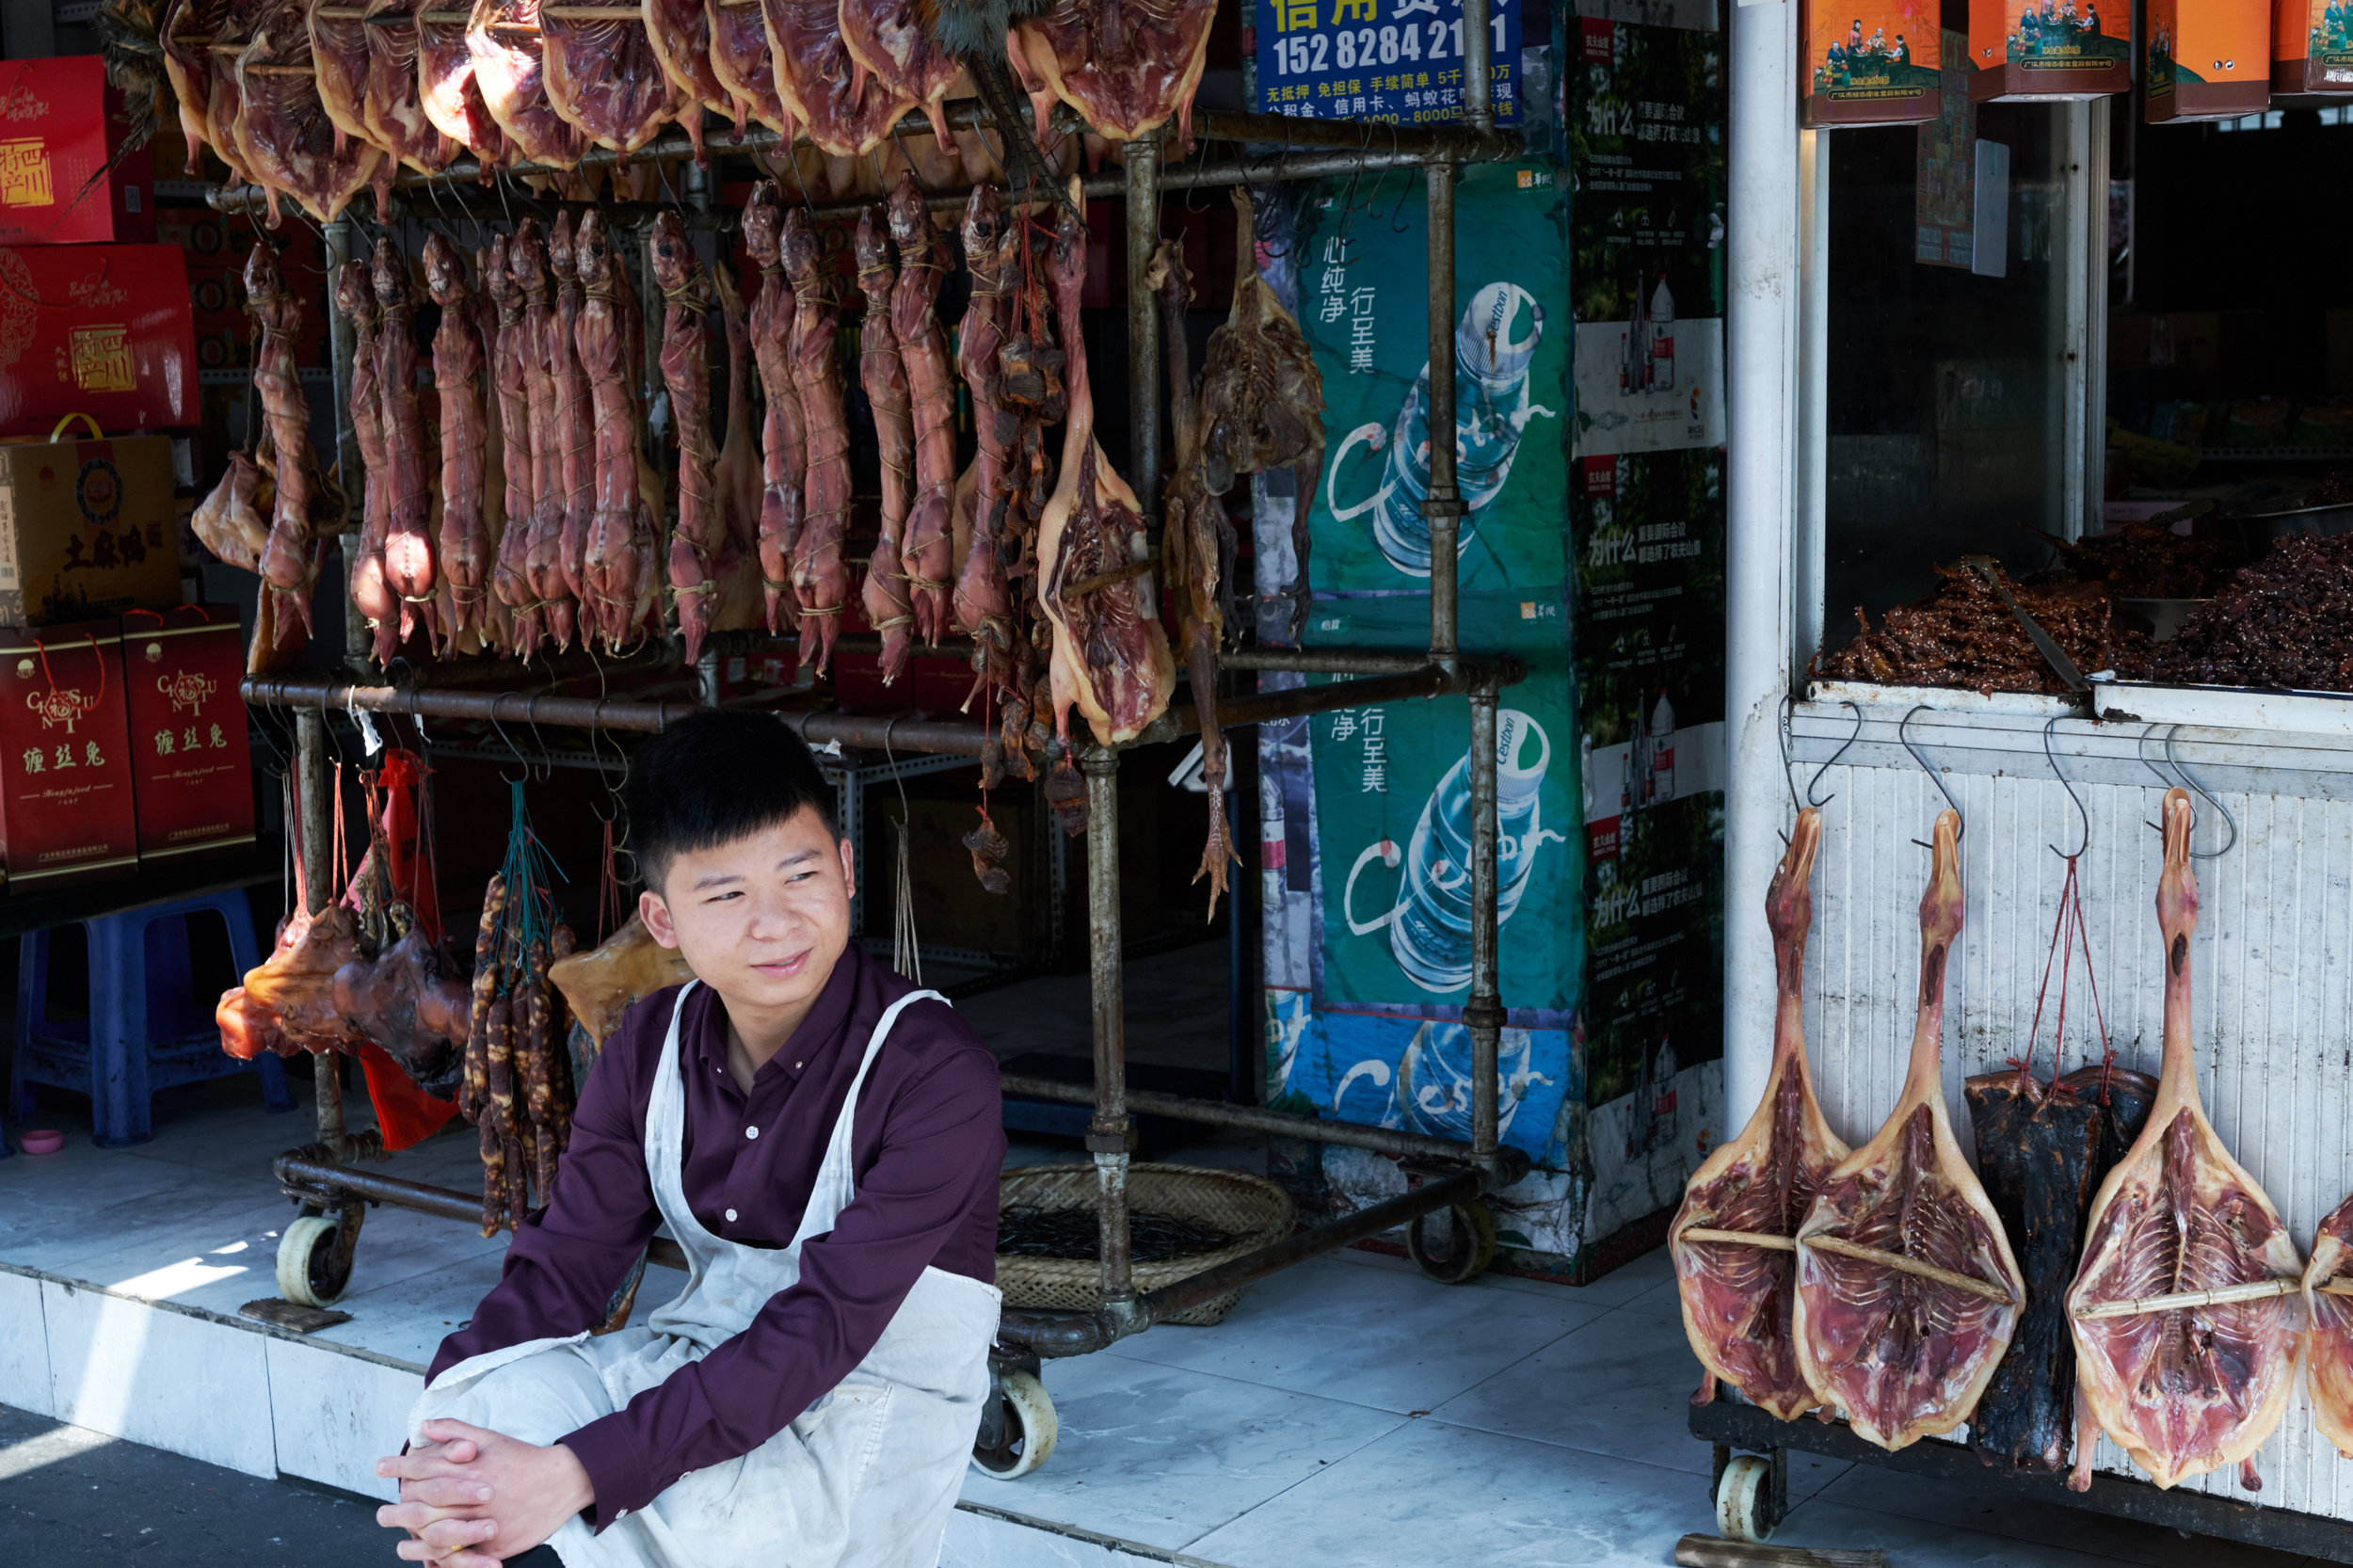 Vendor in Guanghan with red rabbit and other cured meats